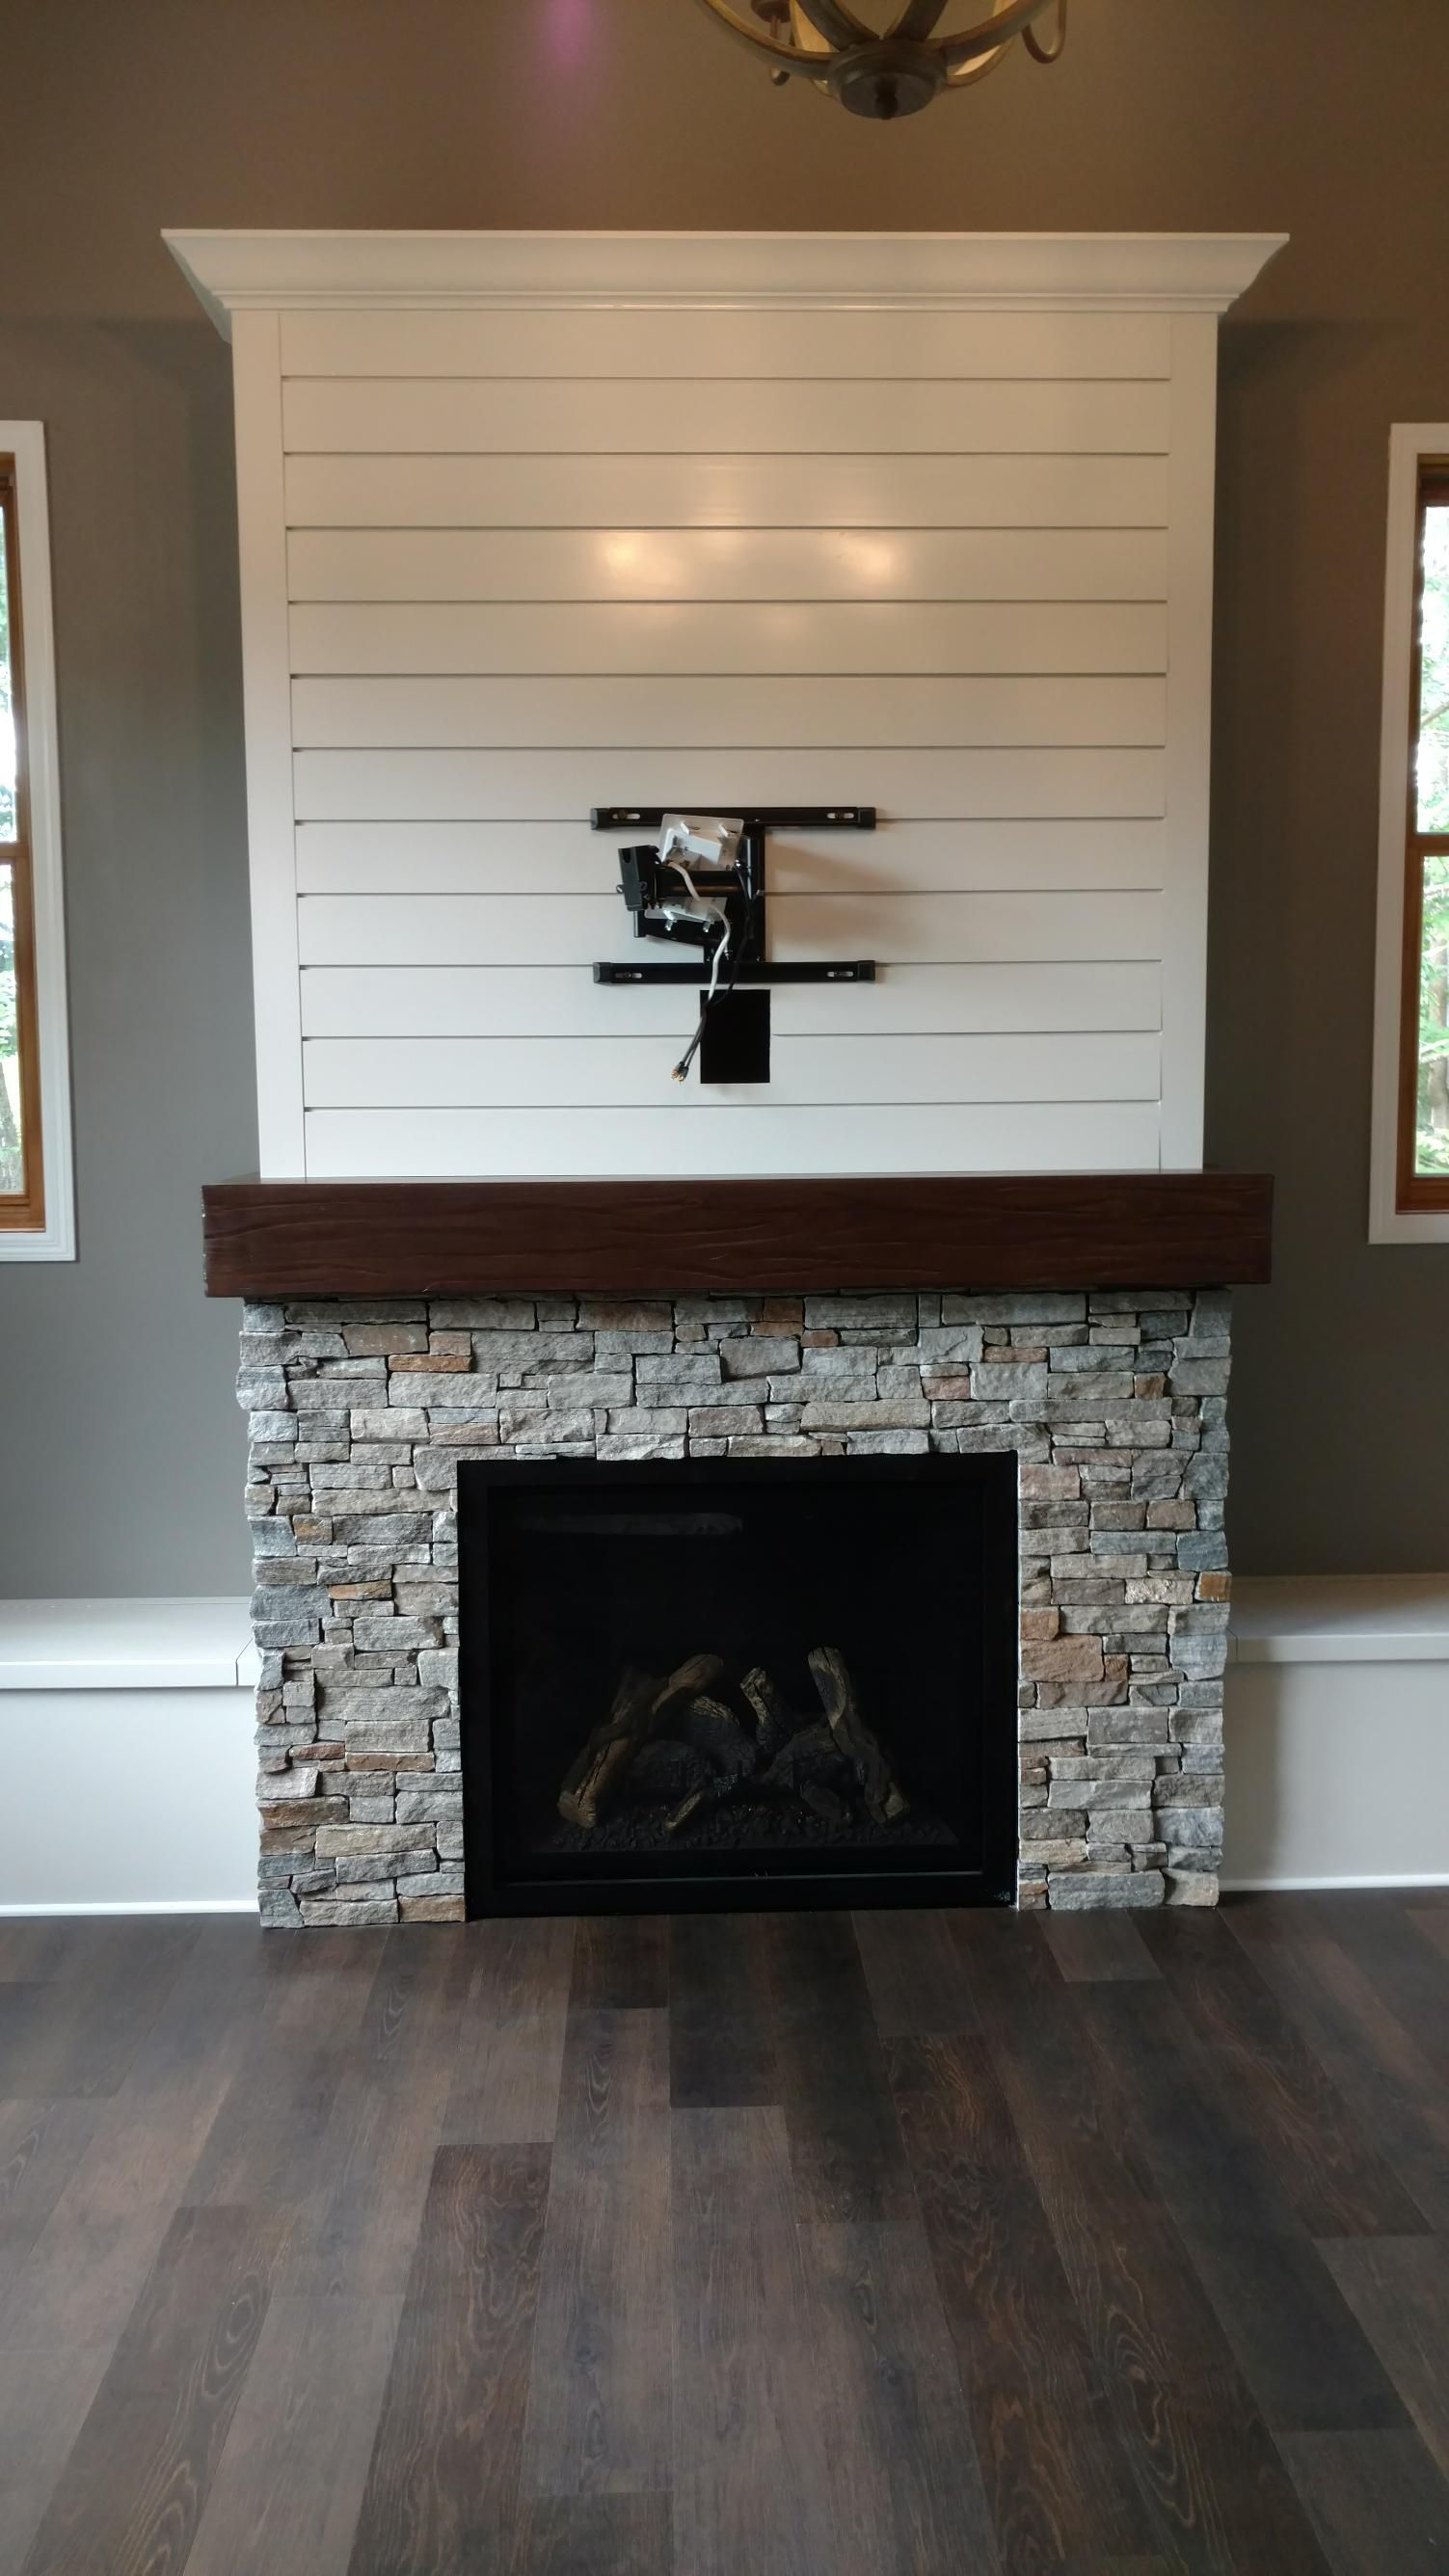 Great american fireplace built this full wall fireplace surround with kozy heat bayport fireplace greystone gold estate stone and custom wood work from